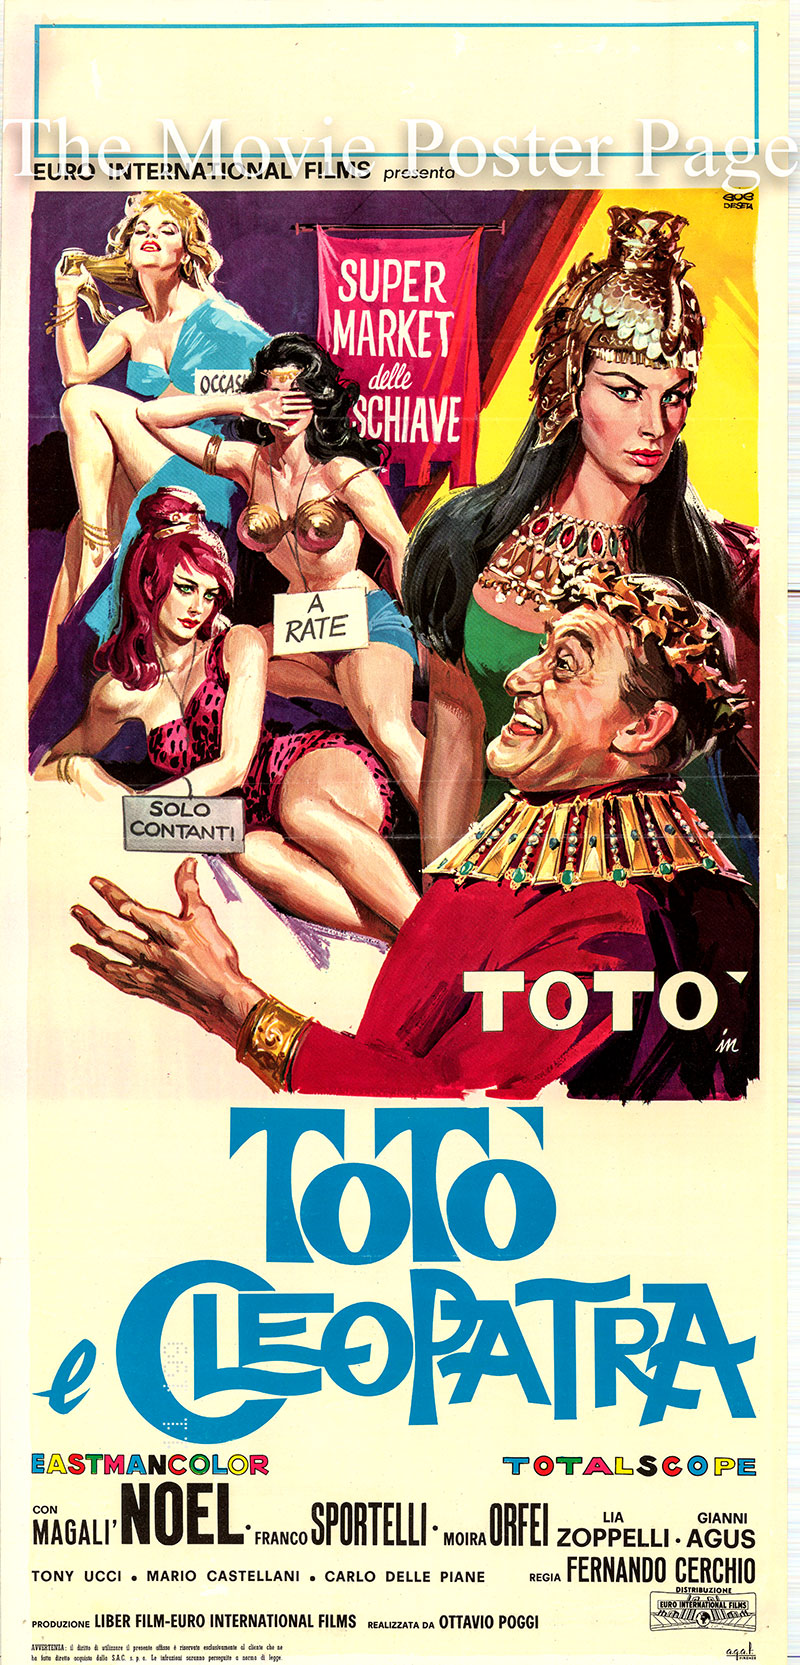 Pictured is an Italian locandina poster for the 1963 Fernando Cerchio film Toto and Cleopatra starring Toto as Marc Antnonio.